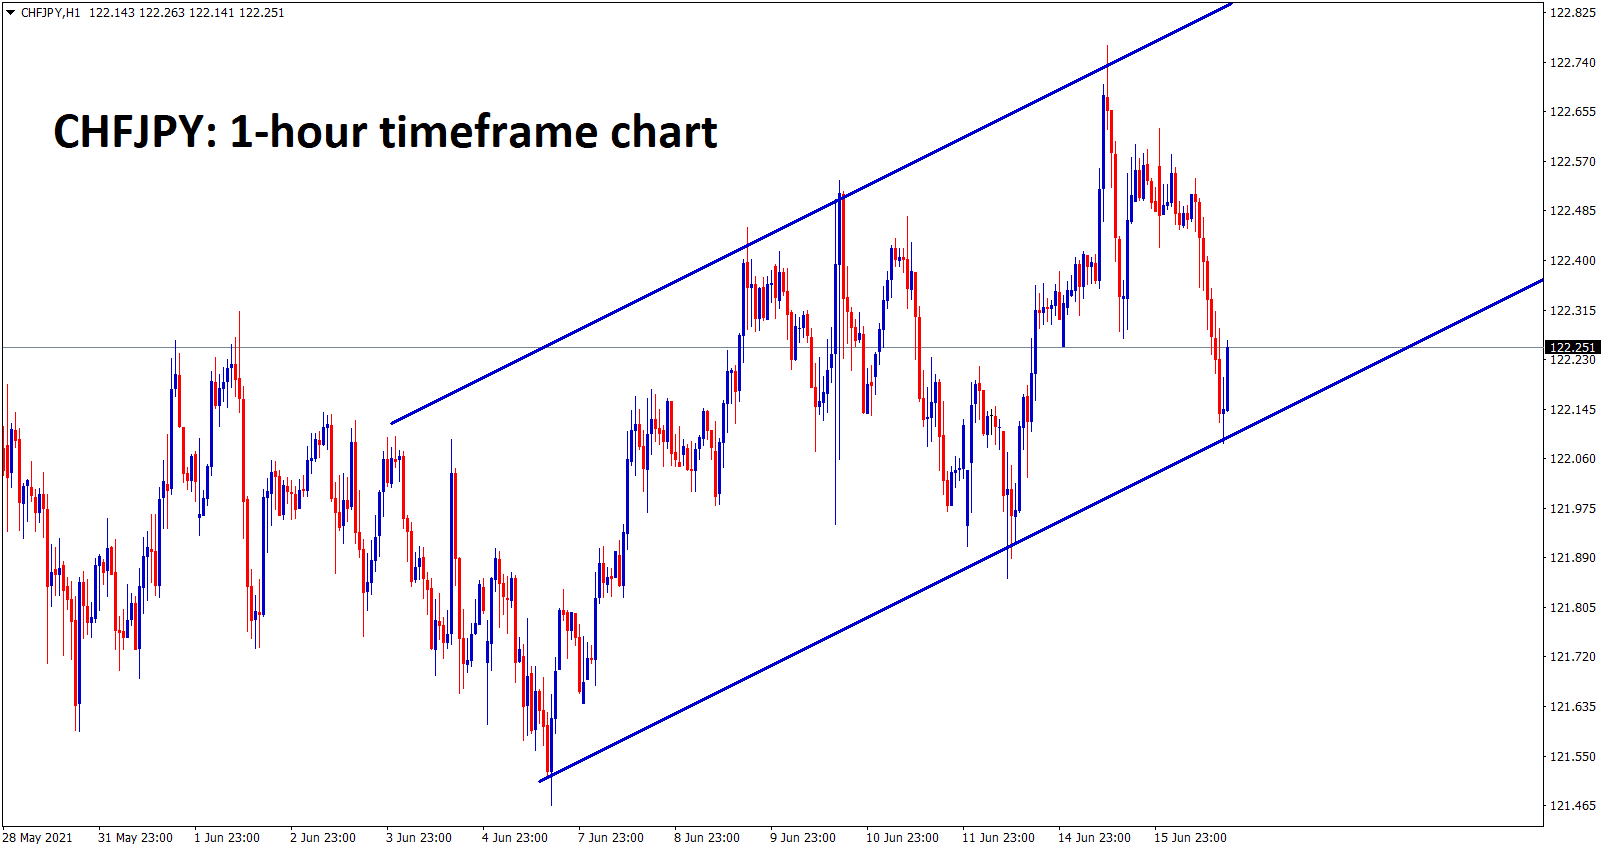 CHFJPY is moving in an Ascending Channel